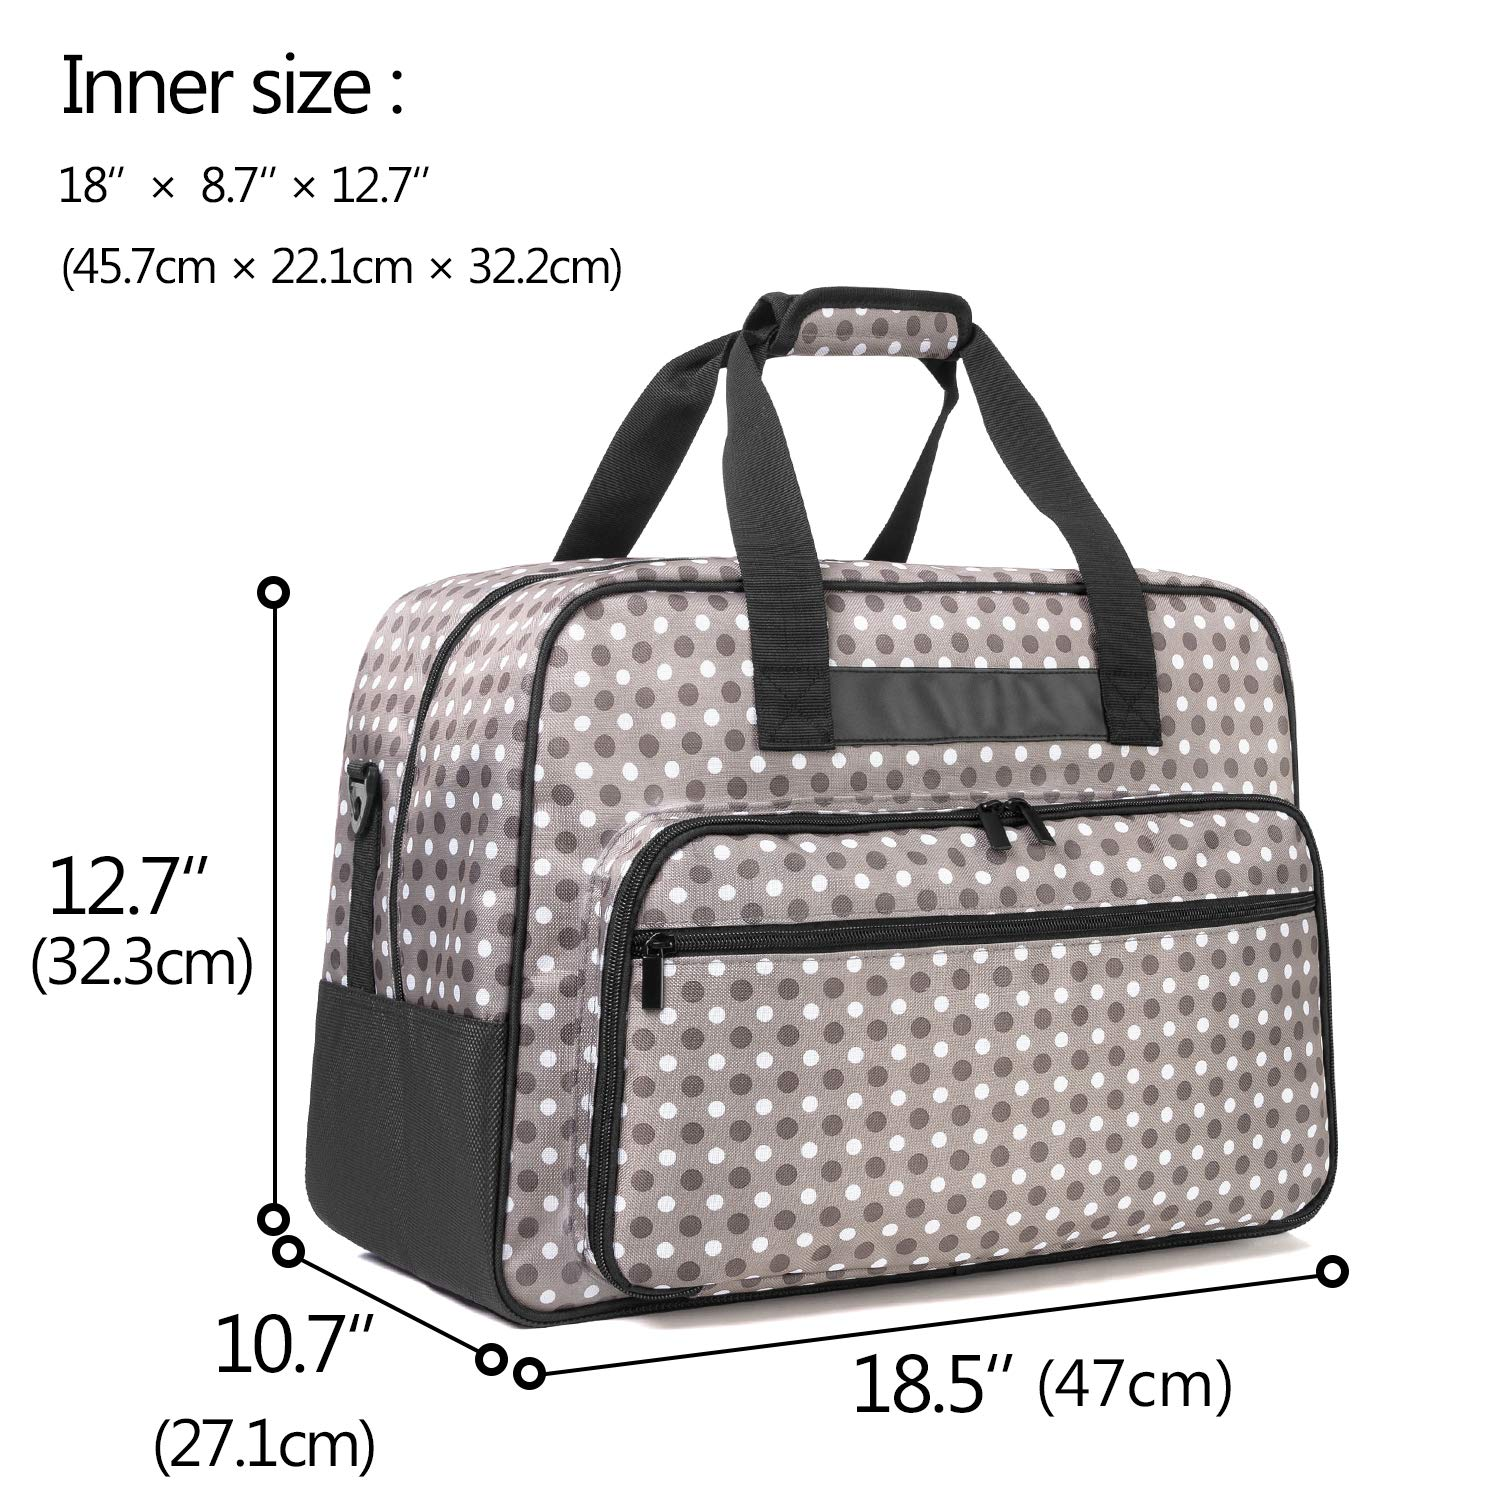 Purple Universal Overlock Sewing Machine Tote Bag with Anti-Slip Padded Bottom for Most Standard Overlocker Machine and Supplies Yarwo Serger Carrying Case